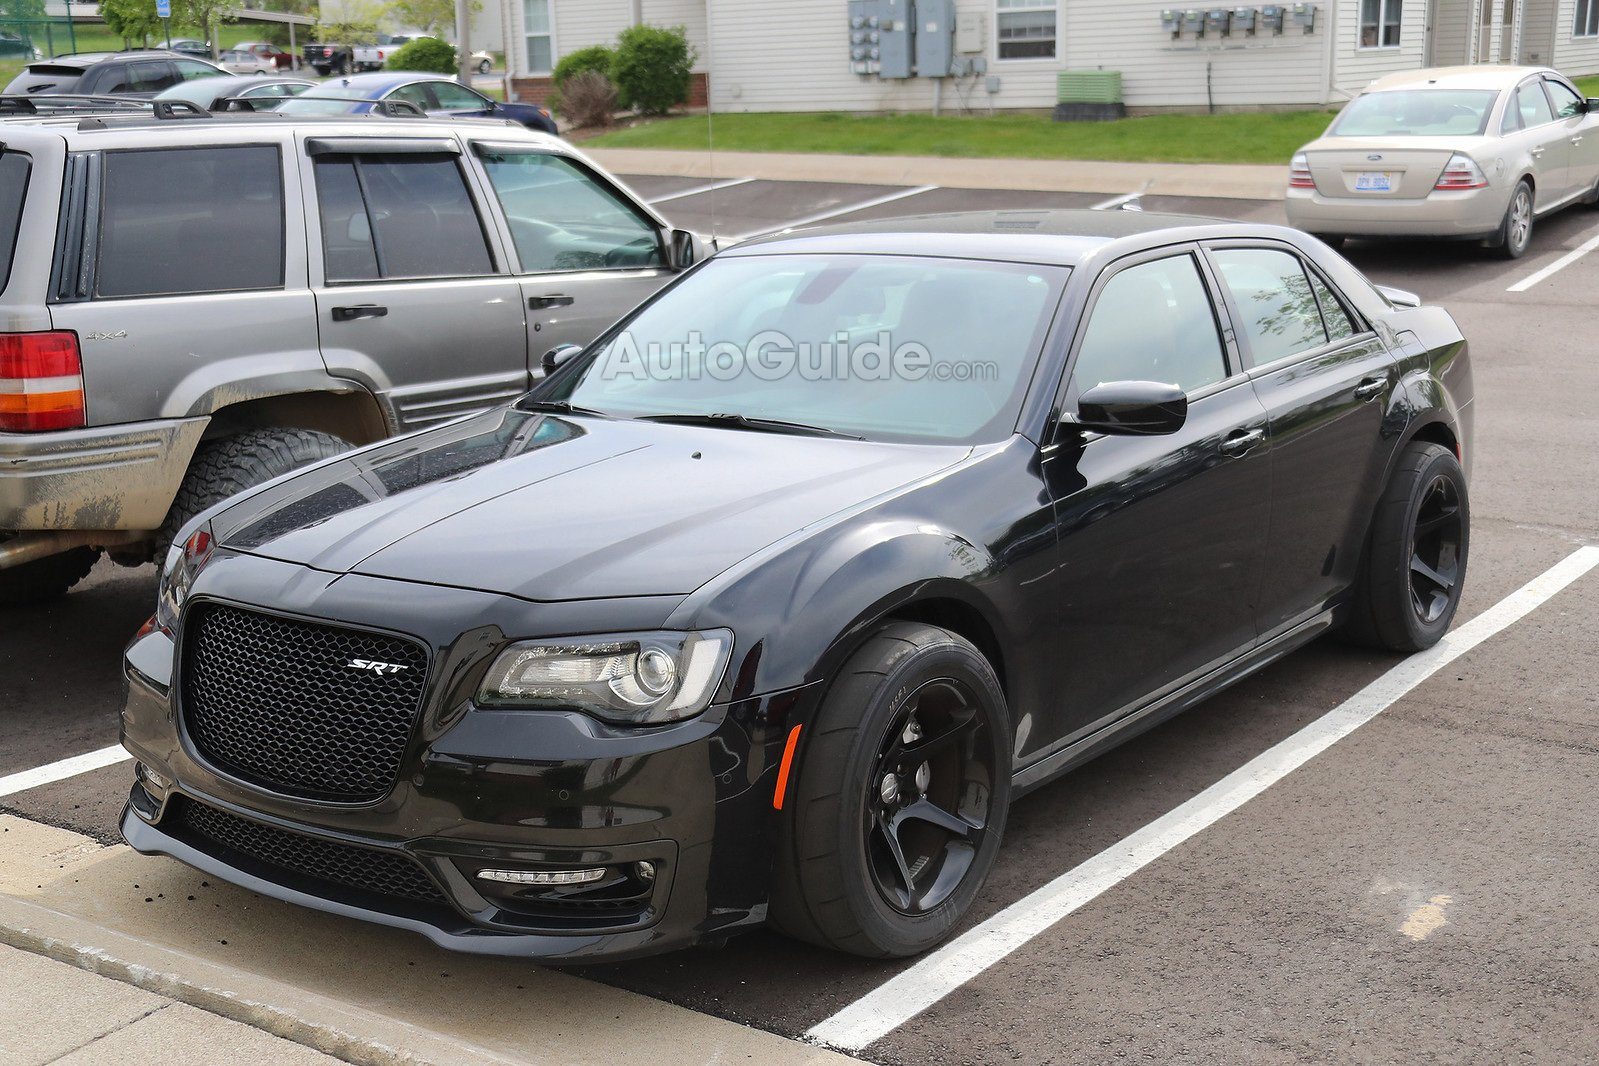 2016 chrysler 300 srt8 hellcat autos post. Black Bedroom Furniture Sets. Home Design Ideas